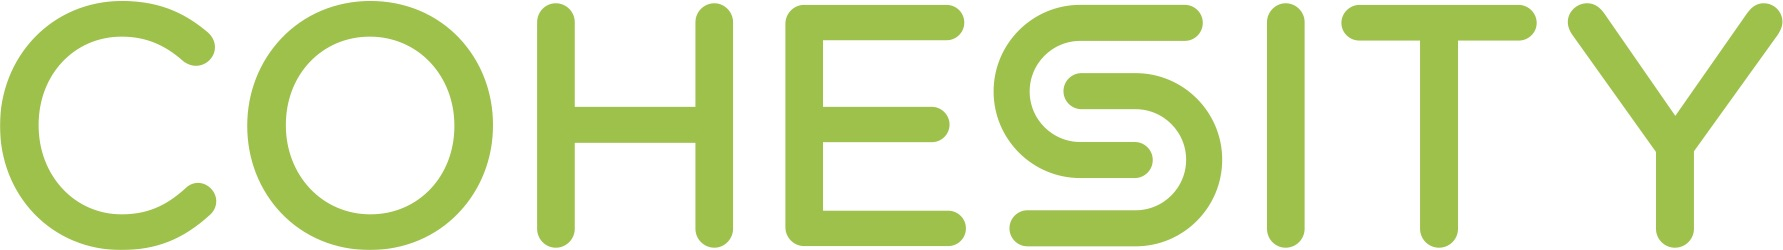 Cohesity logo green vectort.jpg